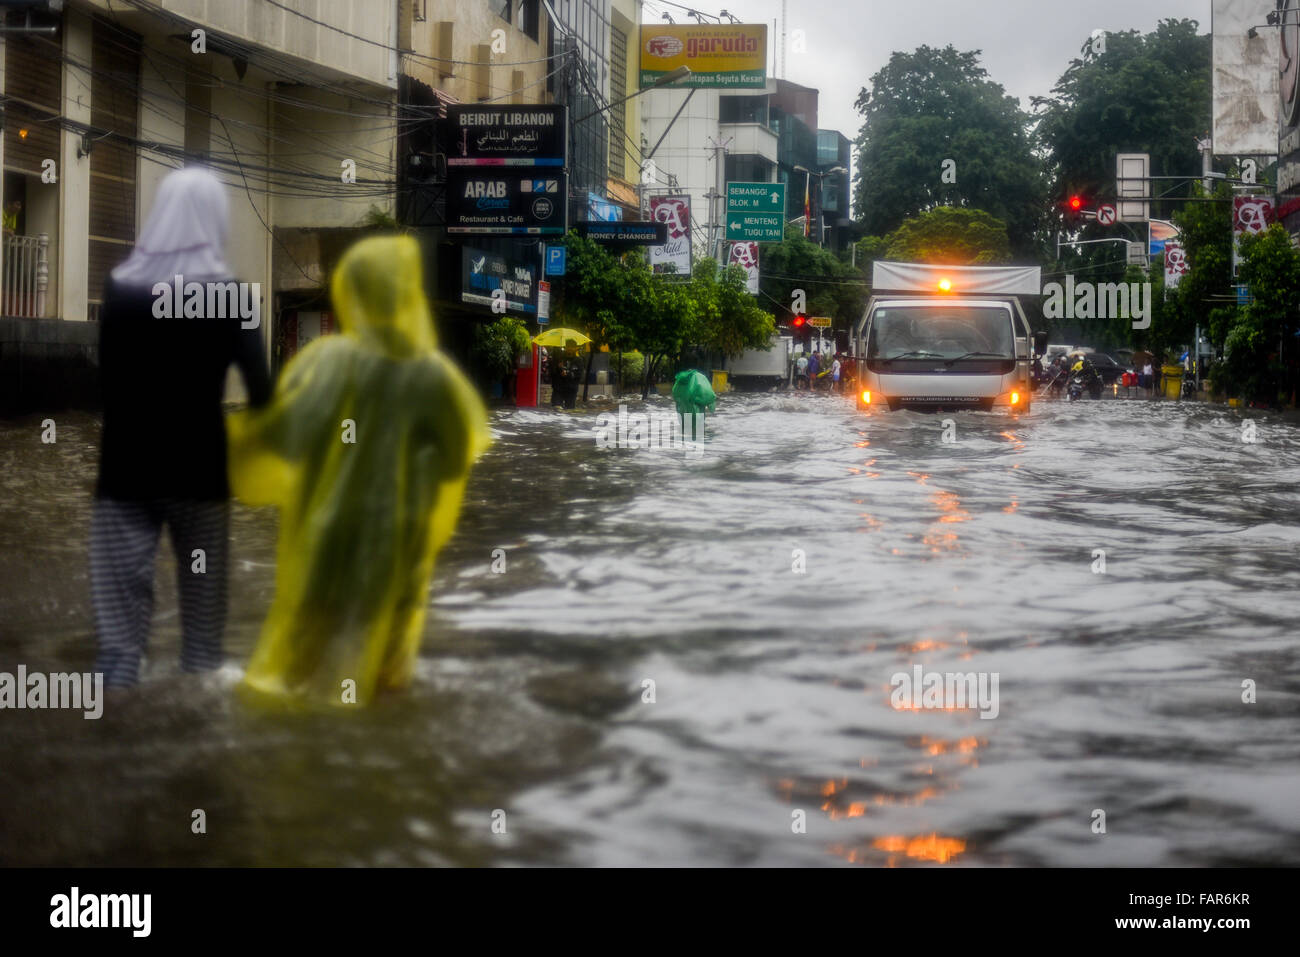 People walking through floodwaters during heavy rain in Jakarta. Stock Photo